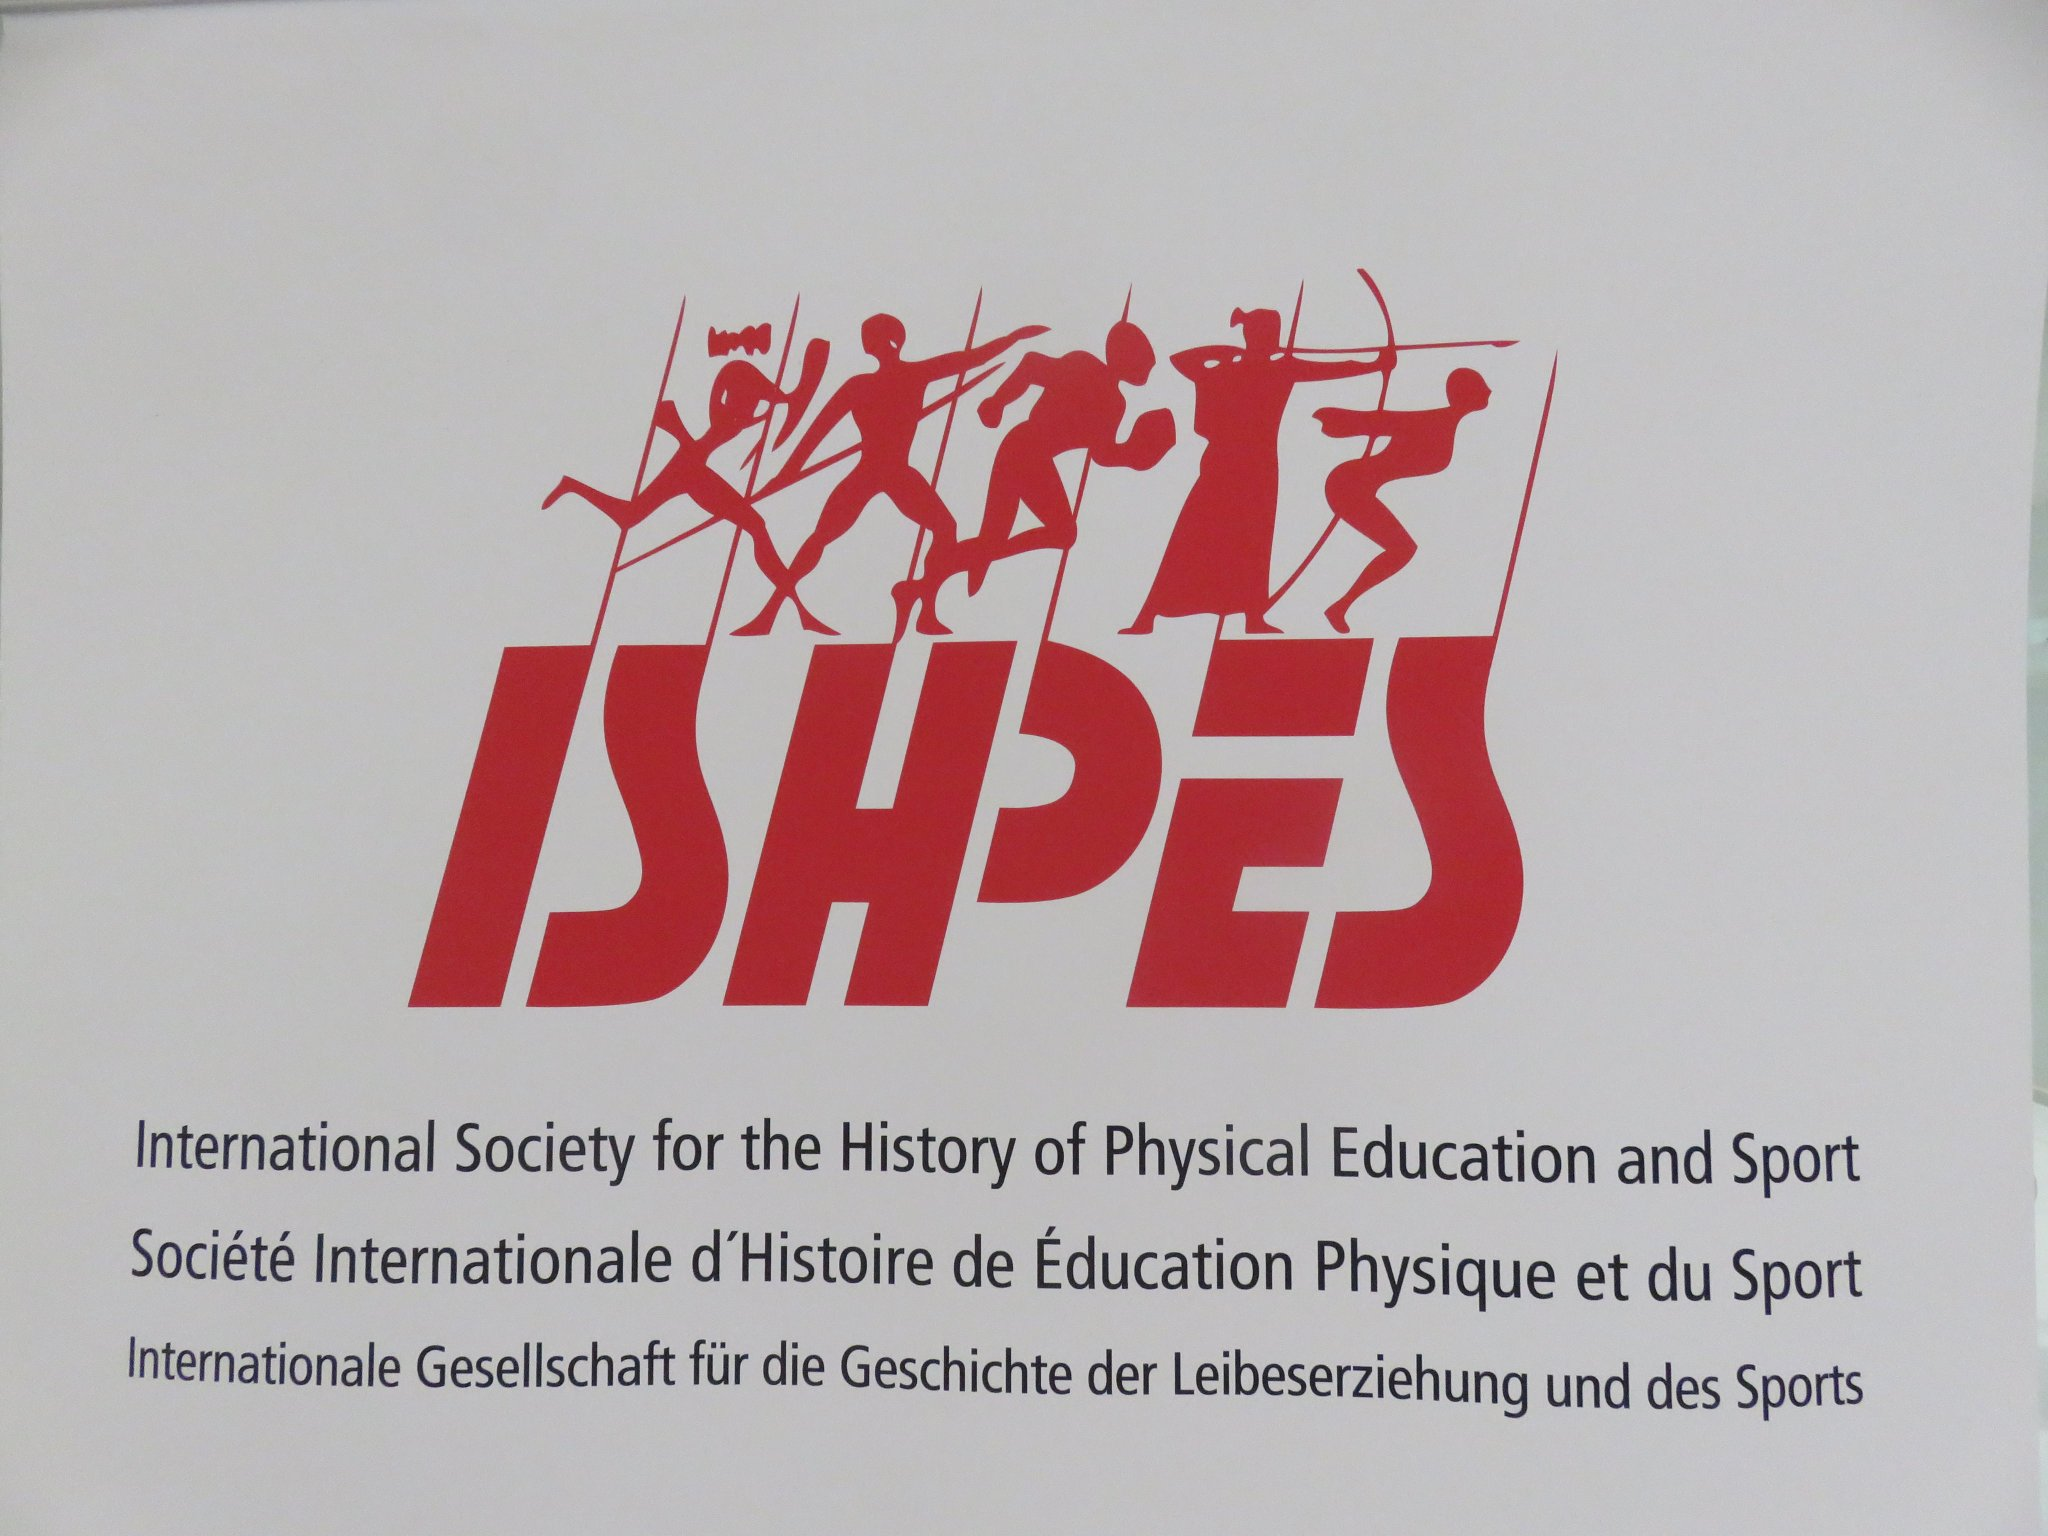 Annual ISHPES conference now underway in Paris.  See the packed program at https://t.co/W11zDLIpz7 https://t.co/pJqLDniGm5